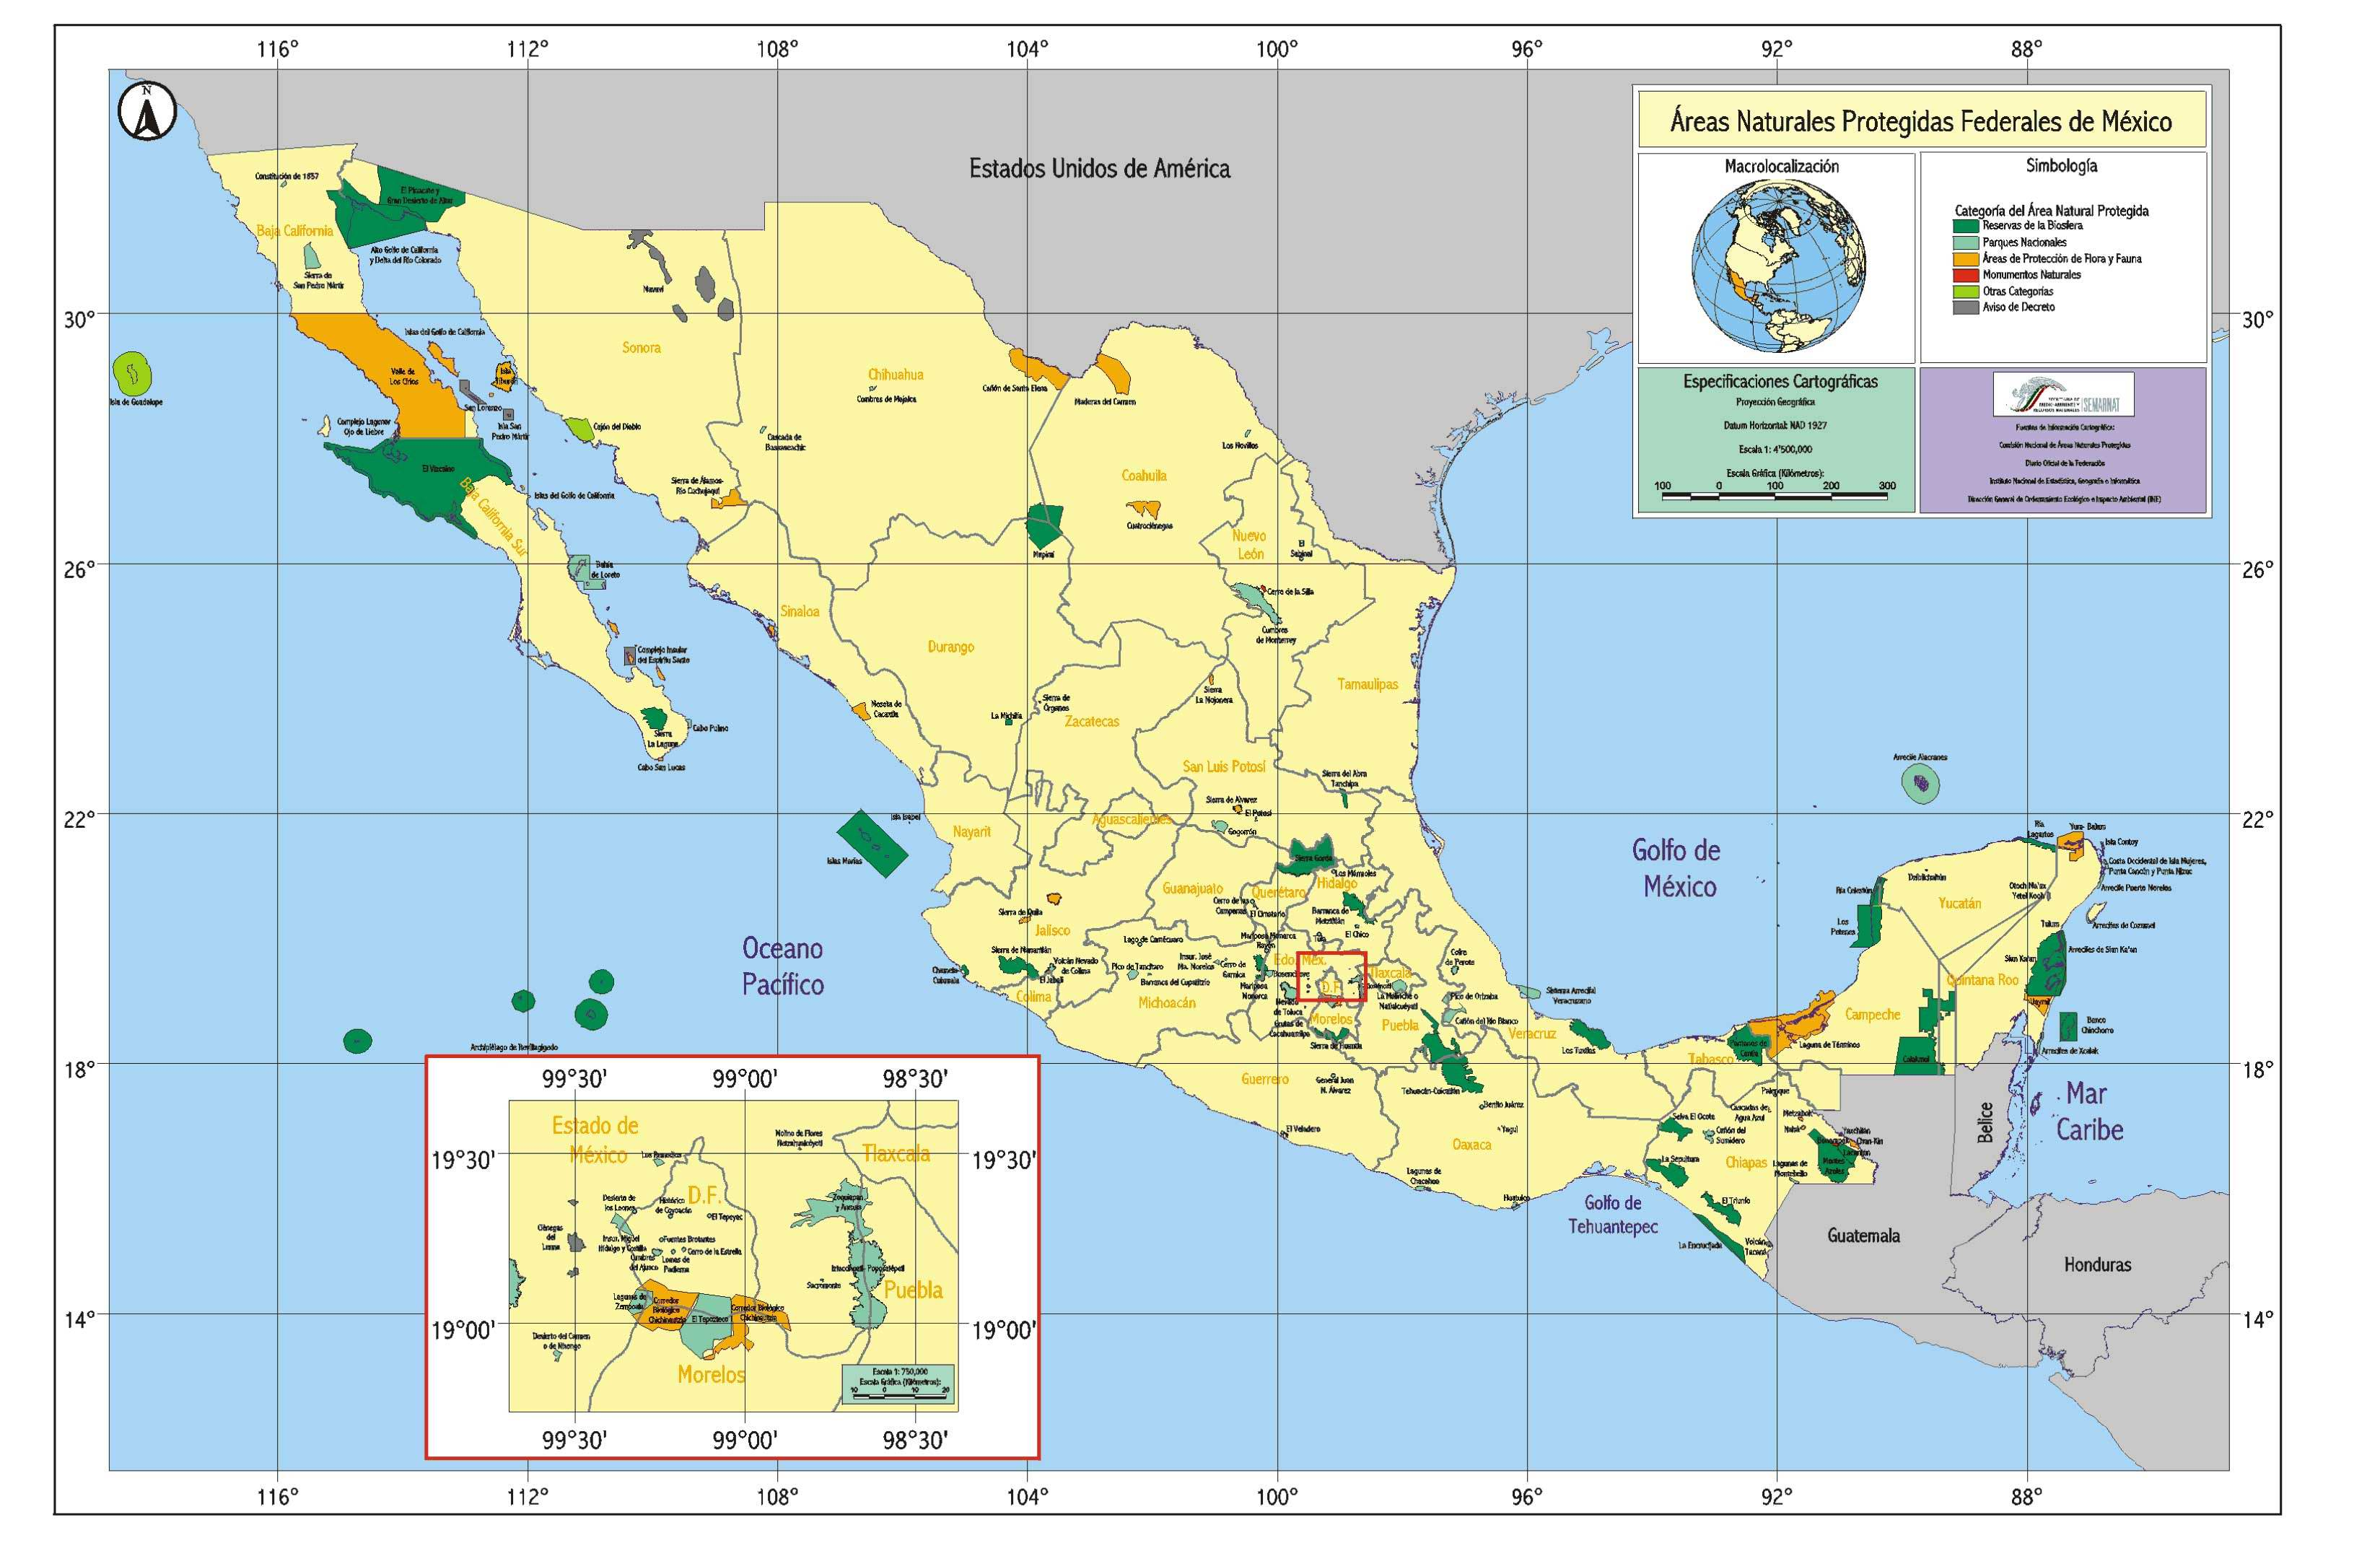 httpwwwparkswatchorgparkprofilesmapspamapsmexicolargemap. zapatistas and alternative education  map of chiapas